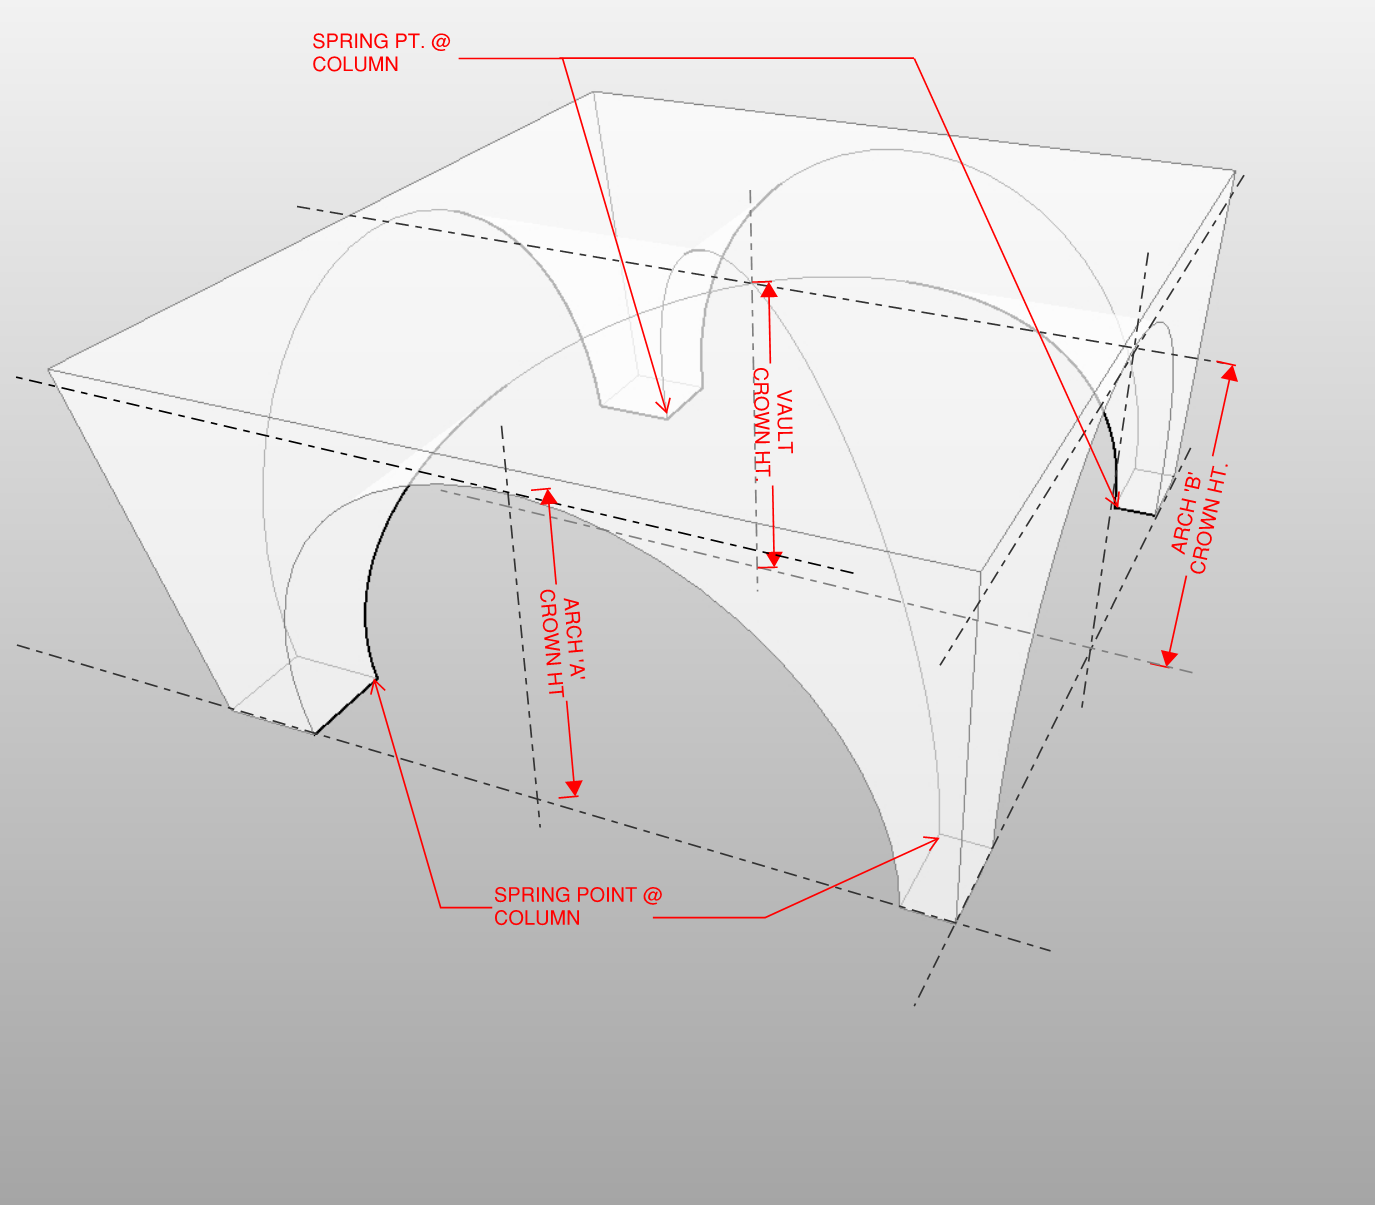 Anatomy Of A Vault Roof: Dimensions The Surveyor Gave The Architect